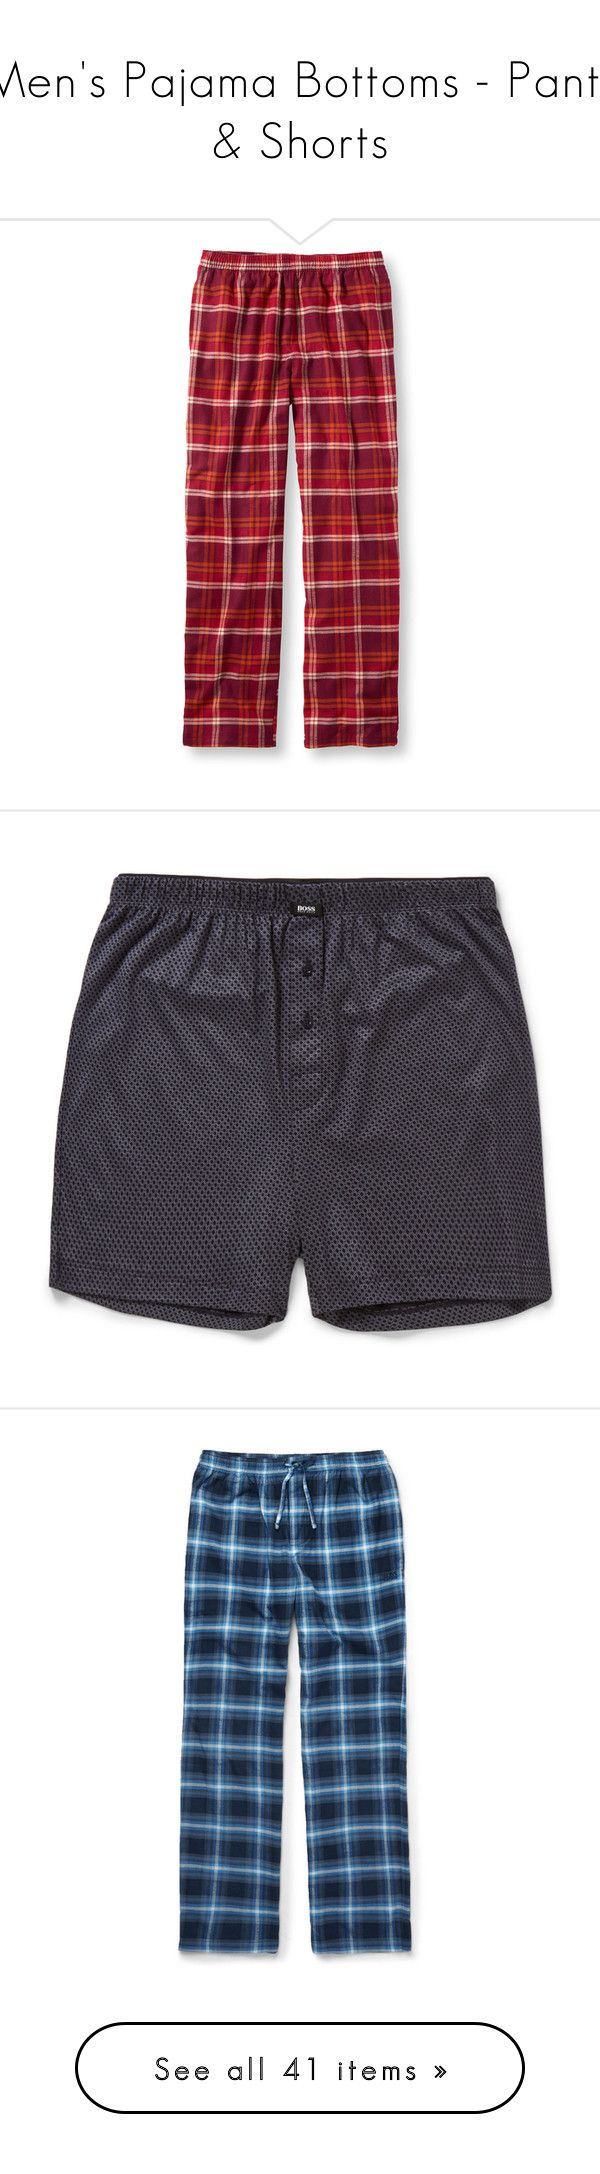 """""""Men's Pajama Bottoms - Pants & Shorts"""" by servayne ❤ liked on Polyvore featuring men's fashion, men's clothing, men's sleepwear, mens sleepwear, tall mens clothing, mens apparel, mens clothing, mens flannel sleepwear, blue and hugo"""